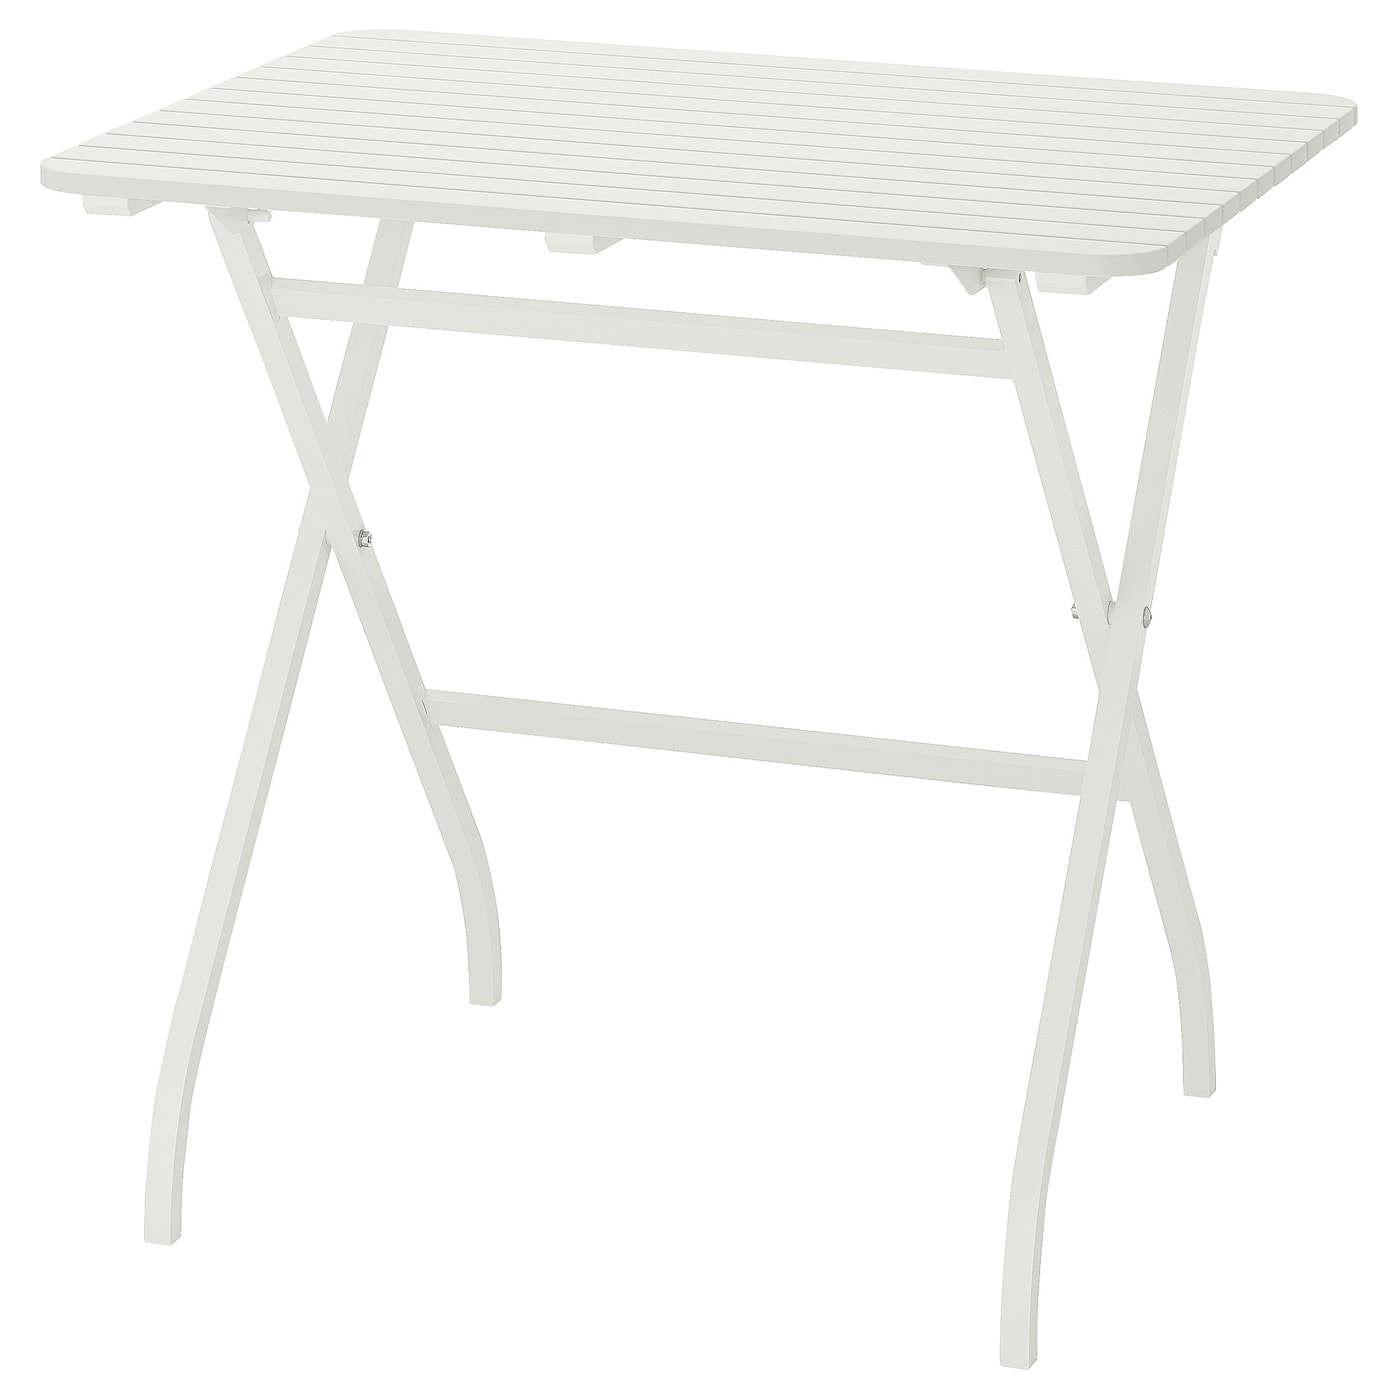 Mälarö Foldable White White Table Outdoor 80x62 Cm Ikea